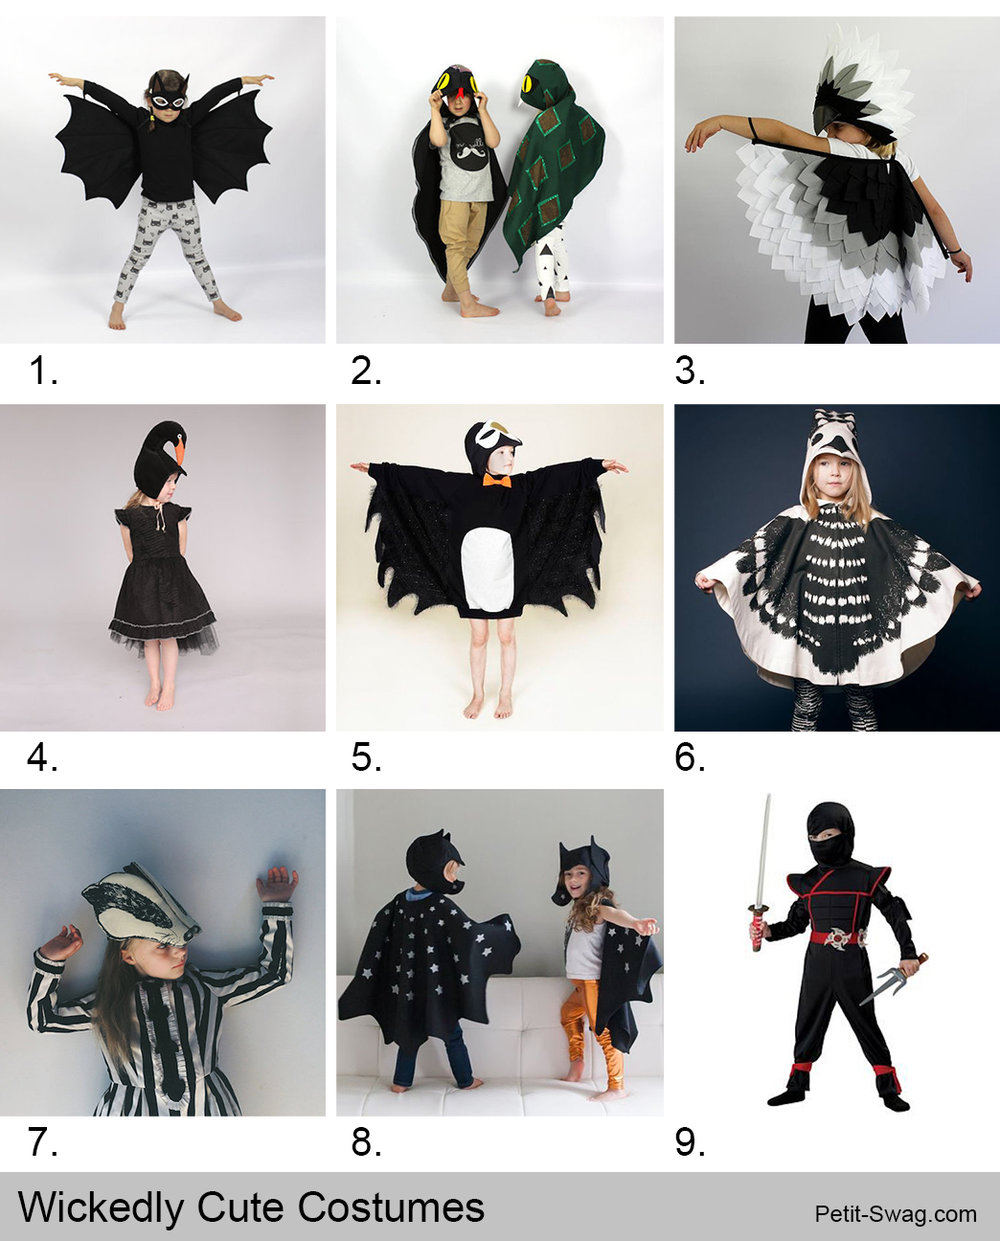 Wickedly Cute Costumes | Petit-Swag.com